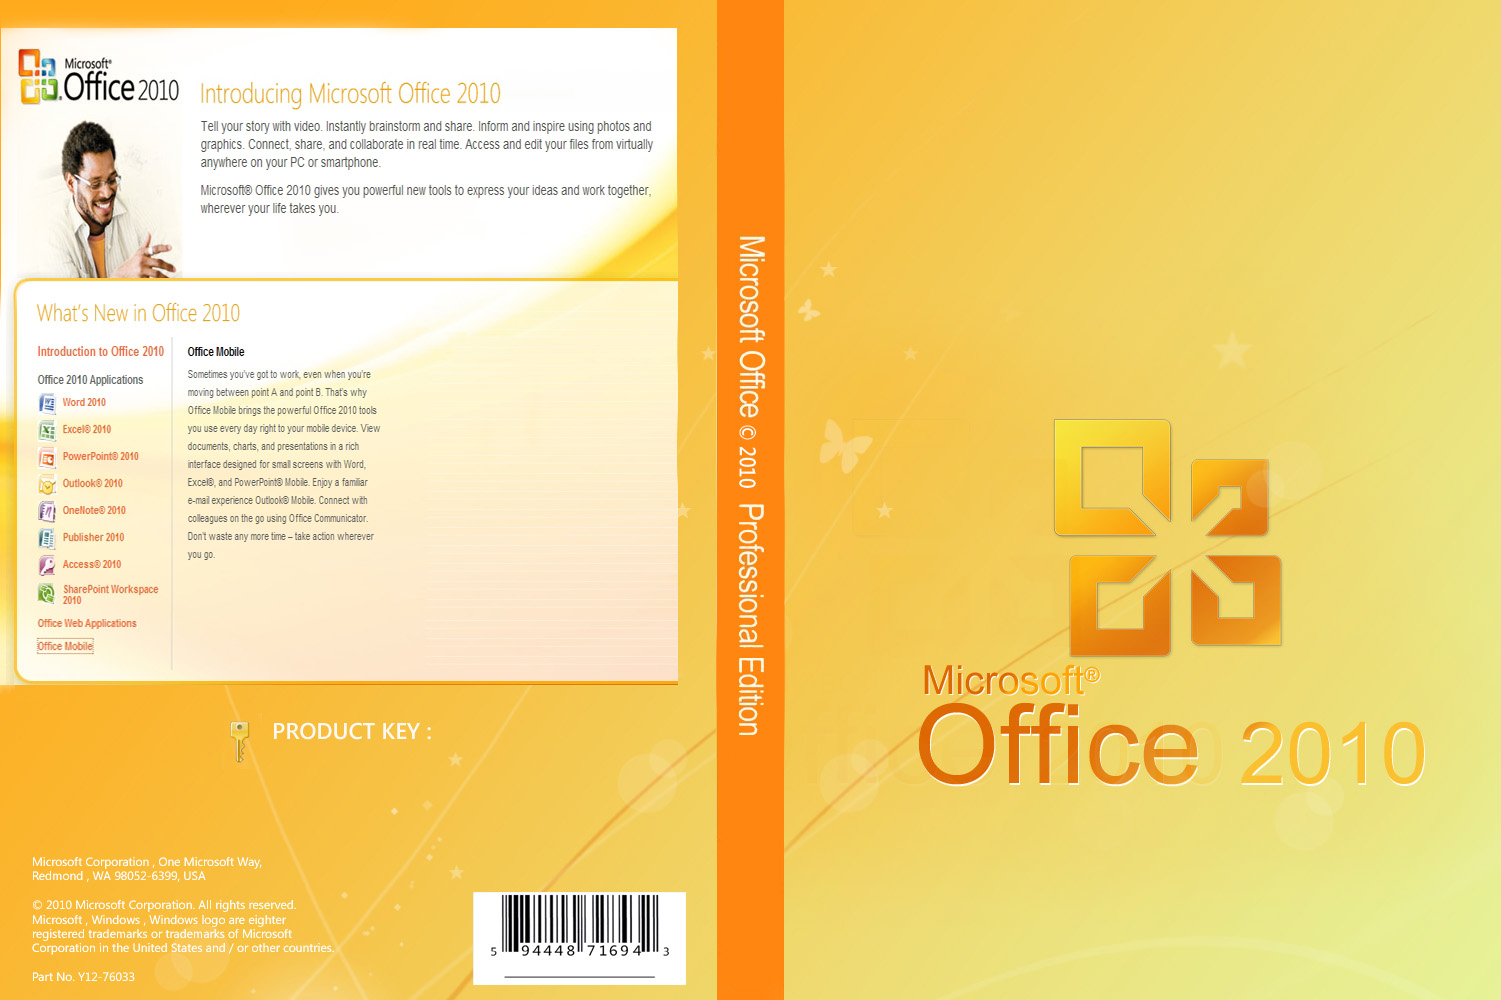 Microsoft office 2010 activate করুন খুব সহজে। Mediafire download 12 MB